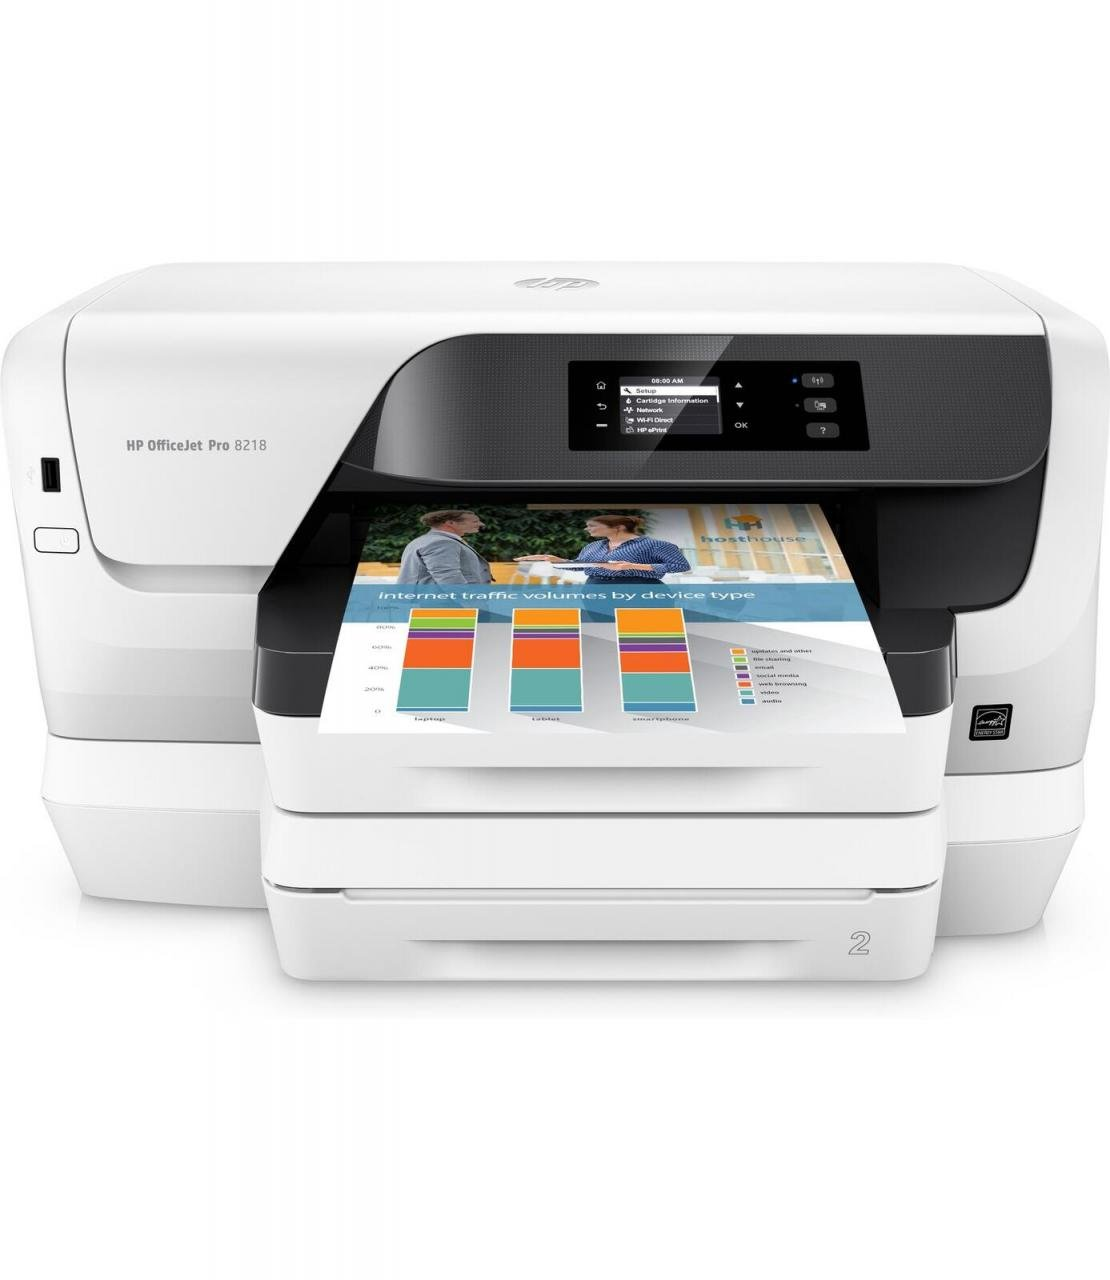 HP OfficeJet Pro 8218 Tintenstrahldrucker